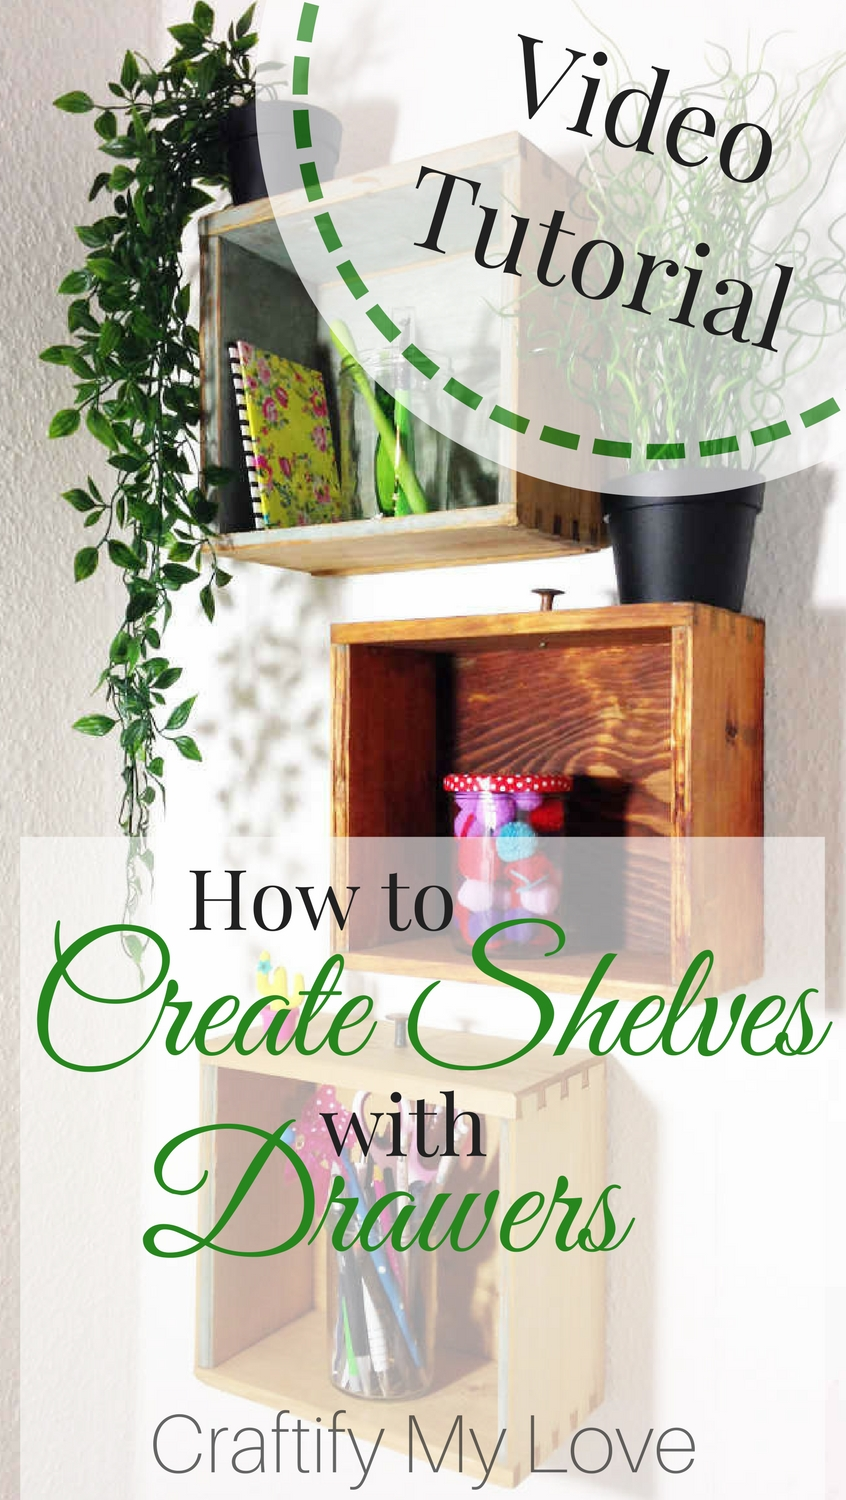 Learn how to create unique shelves by repurposing old drawers. Click for step-by-step instructions including video tutorial | #upcycling #repurposing #diy #shelvesfromdrawers #roadsidefind #fromtrashtotreasure